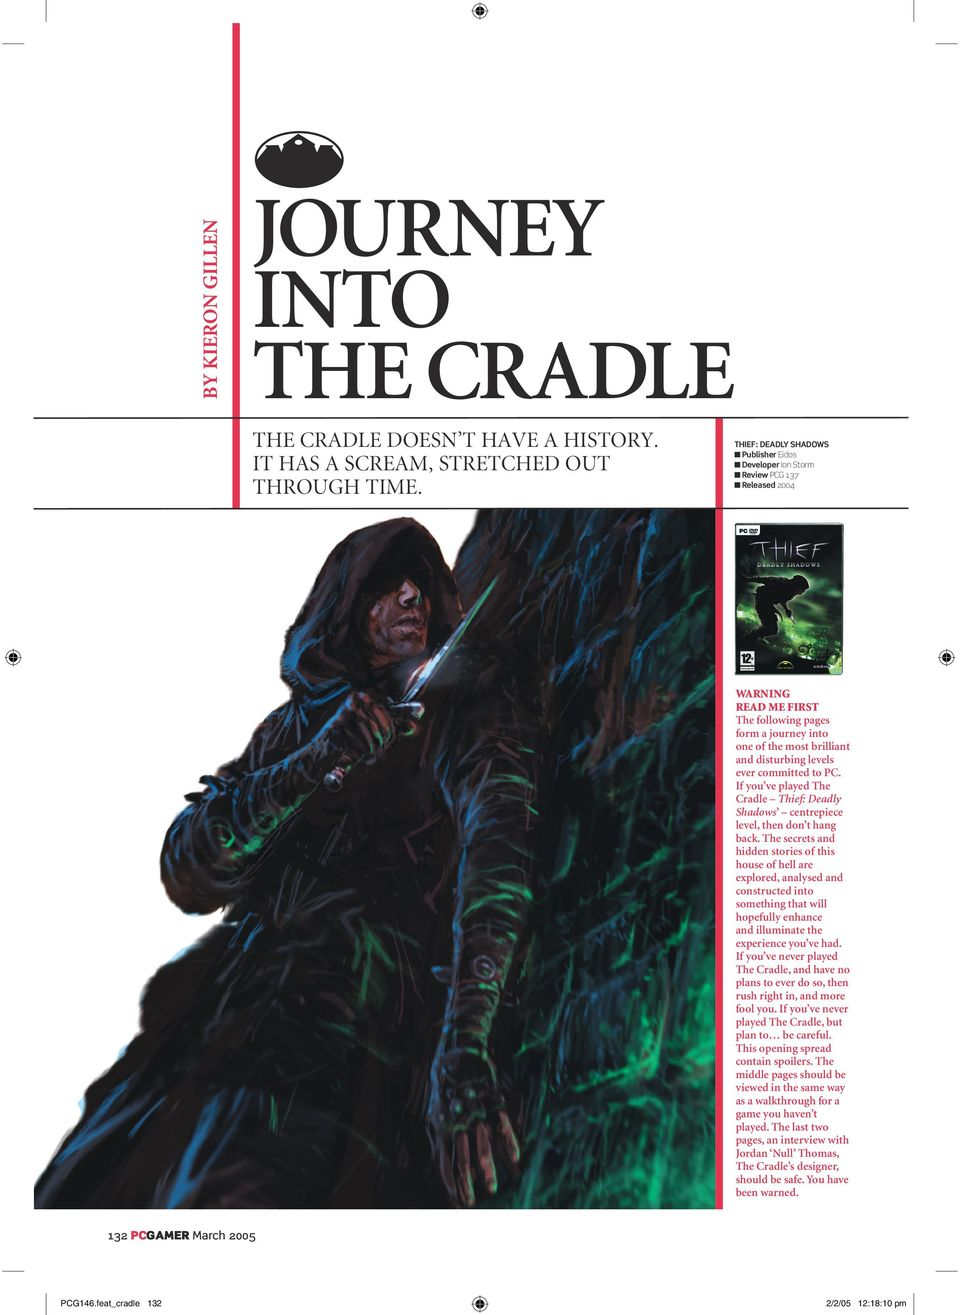 ever committed to PC. If you ve played The Cradle Thief: Deadly Shadows centrepiece level, then don t hang back.